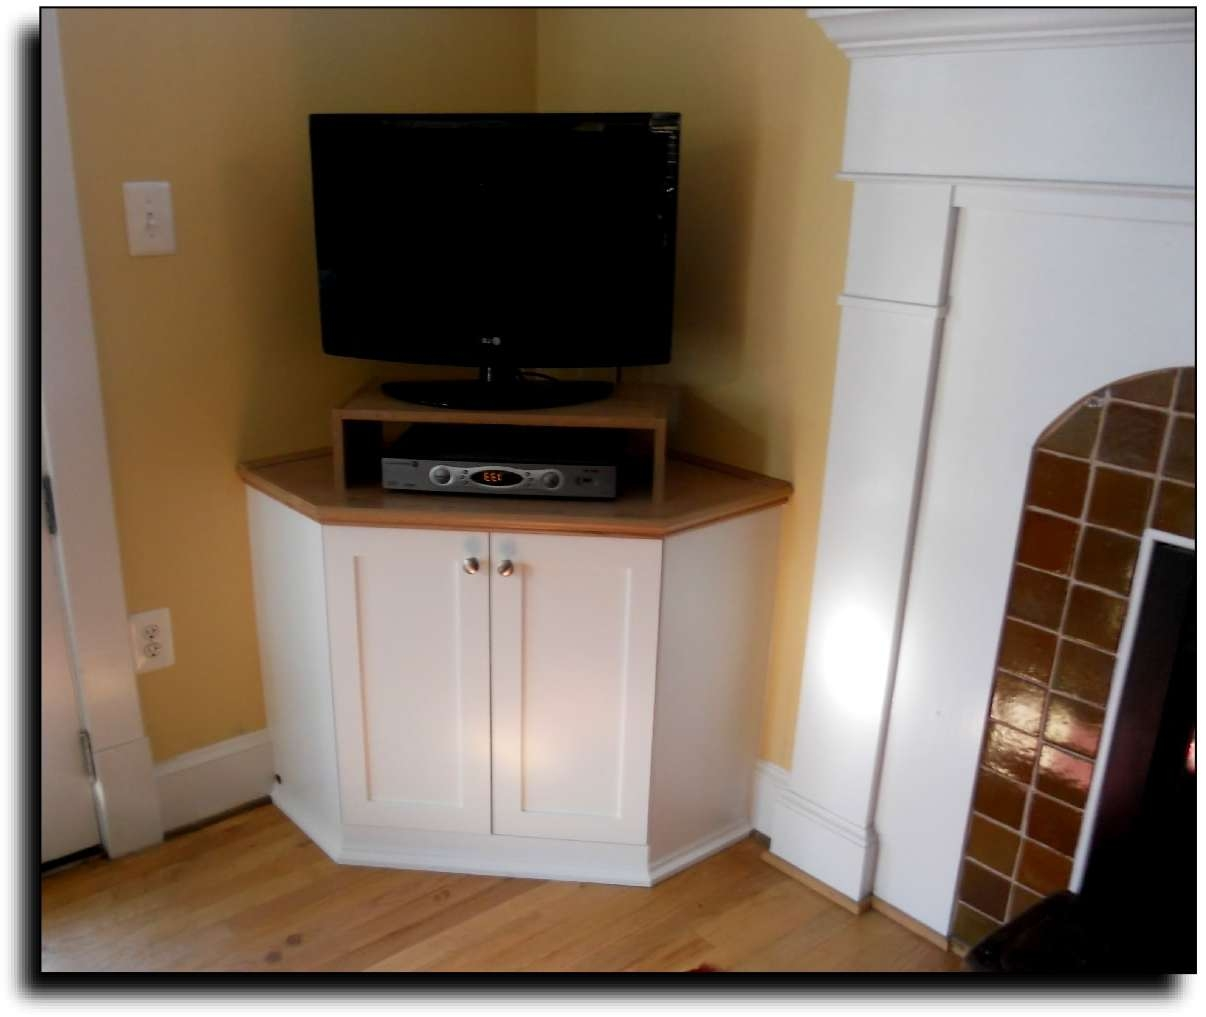 Tall Corner Tv Stand: Designs And Images | Homesfeed Pertaining To Tall Tv Cabinets Corner Unit (View 11 of 20)